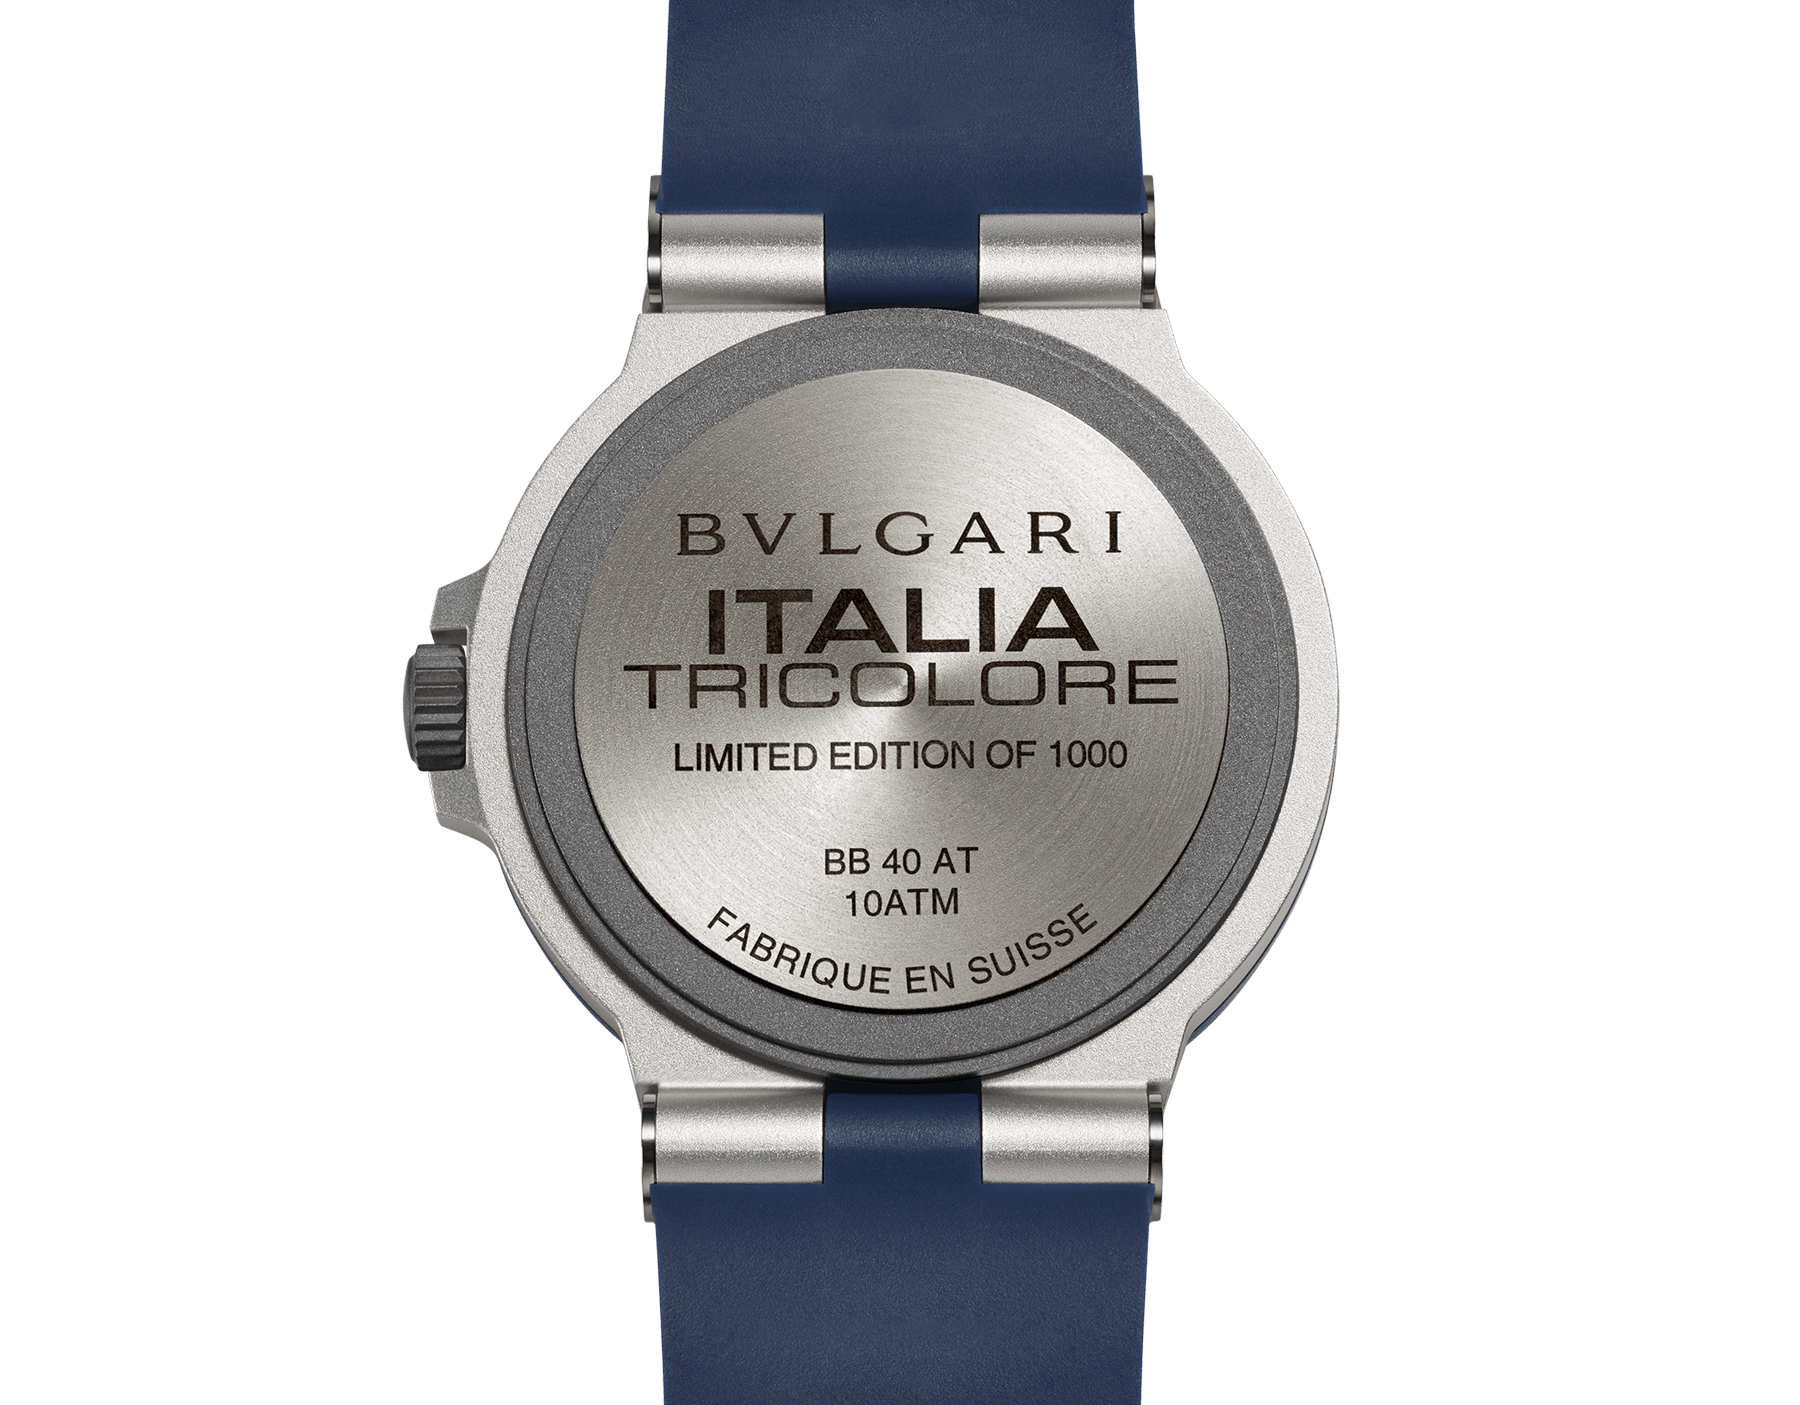 Bvlgari Aluminium Tricolore watch with mechanical movement, automatic winding and date, 40 mm aluminium and titanium case, blue rubber bezel with BVLGARI BVLGARI engraving, warm grey dial with special TRICOLORE logo, and blue rubber bracelet. Water-resistant up to 100 metres. Limited Edition 103514 image 4